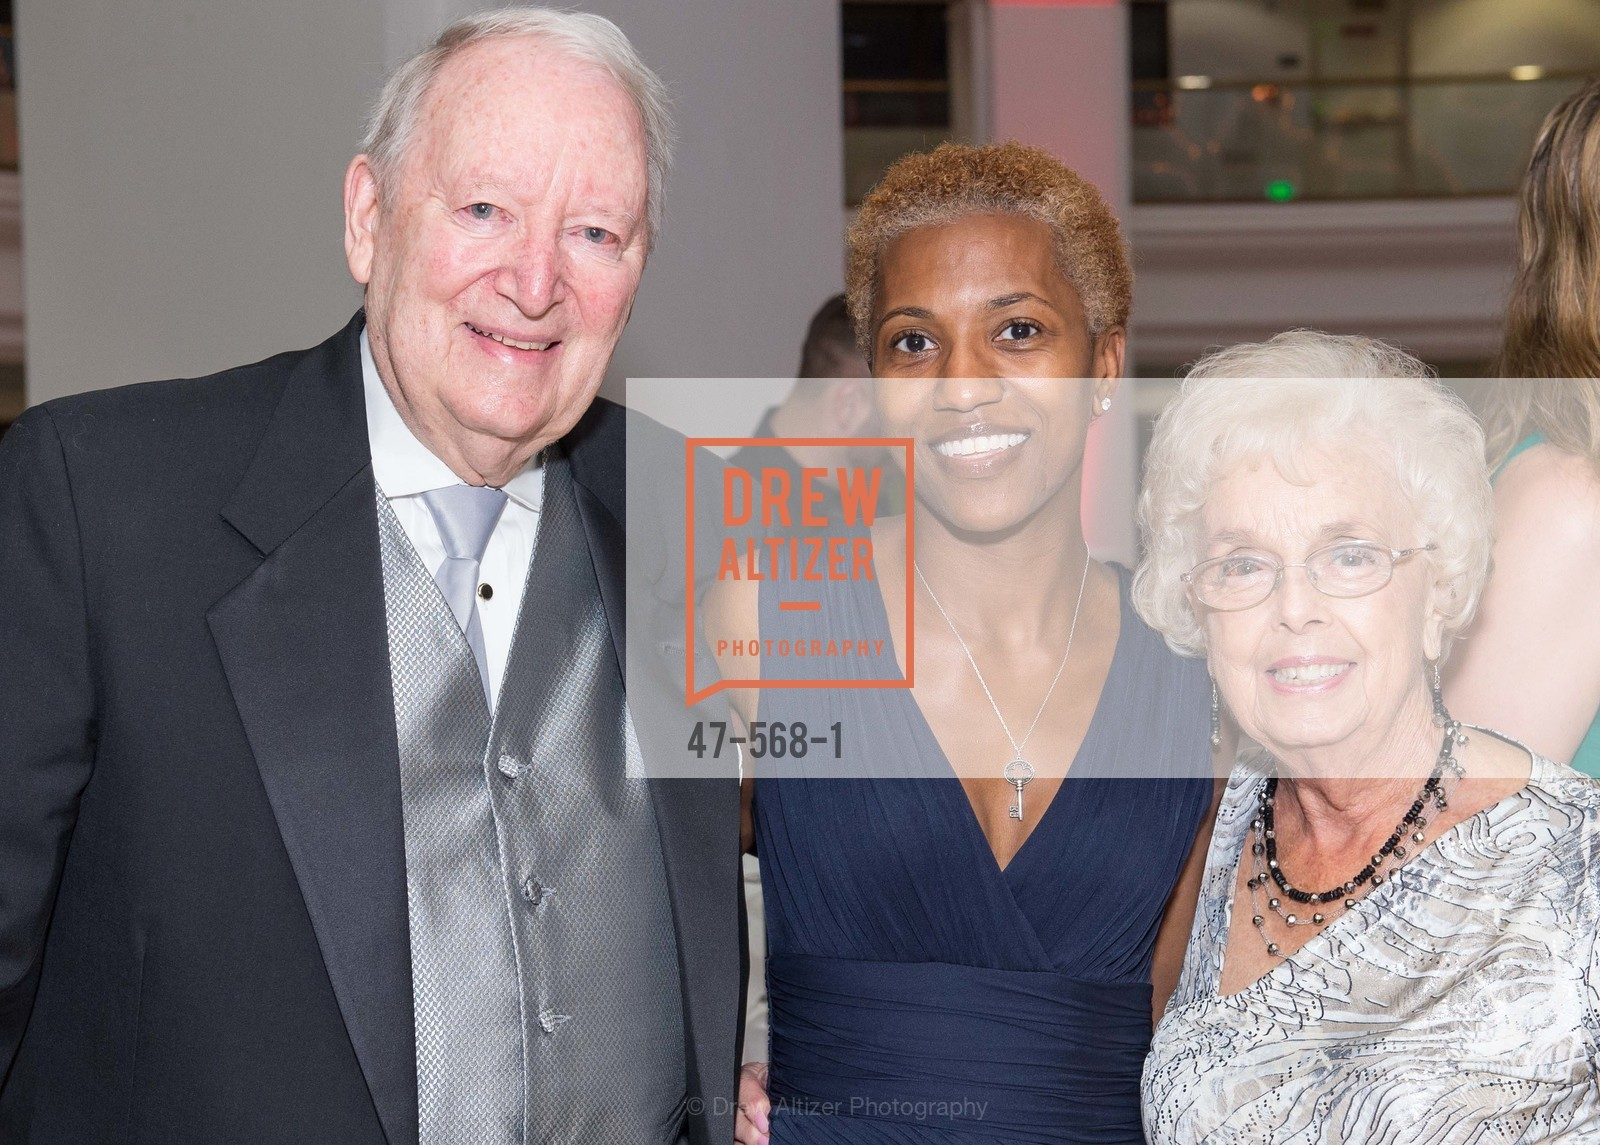 Dick Spees, Autumn King, Jean Spees, SOTHEBY'S  Hosts a Private Viewing of Highlights from the Collection of MRS. PAUL MELLON, US, September 17th, 2014,Drew Altizer, Drew Altizer Photography, full-service agency, private events, San Francisco photographer, photographer california